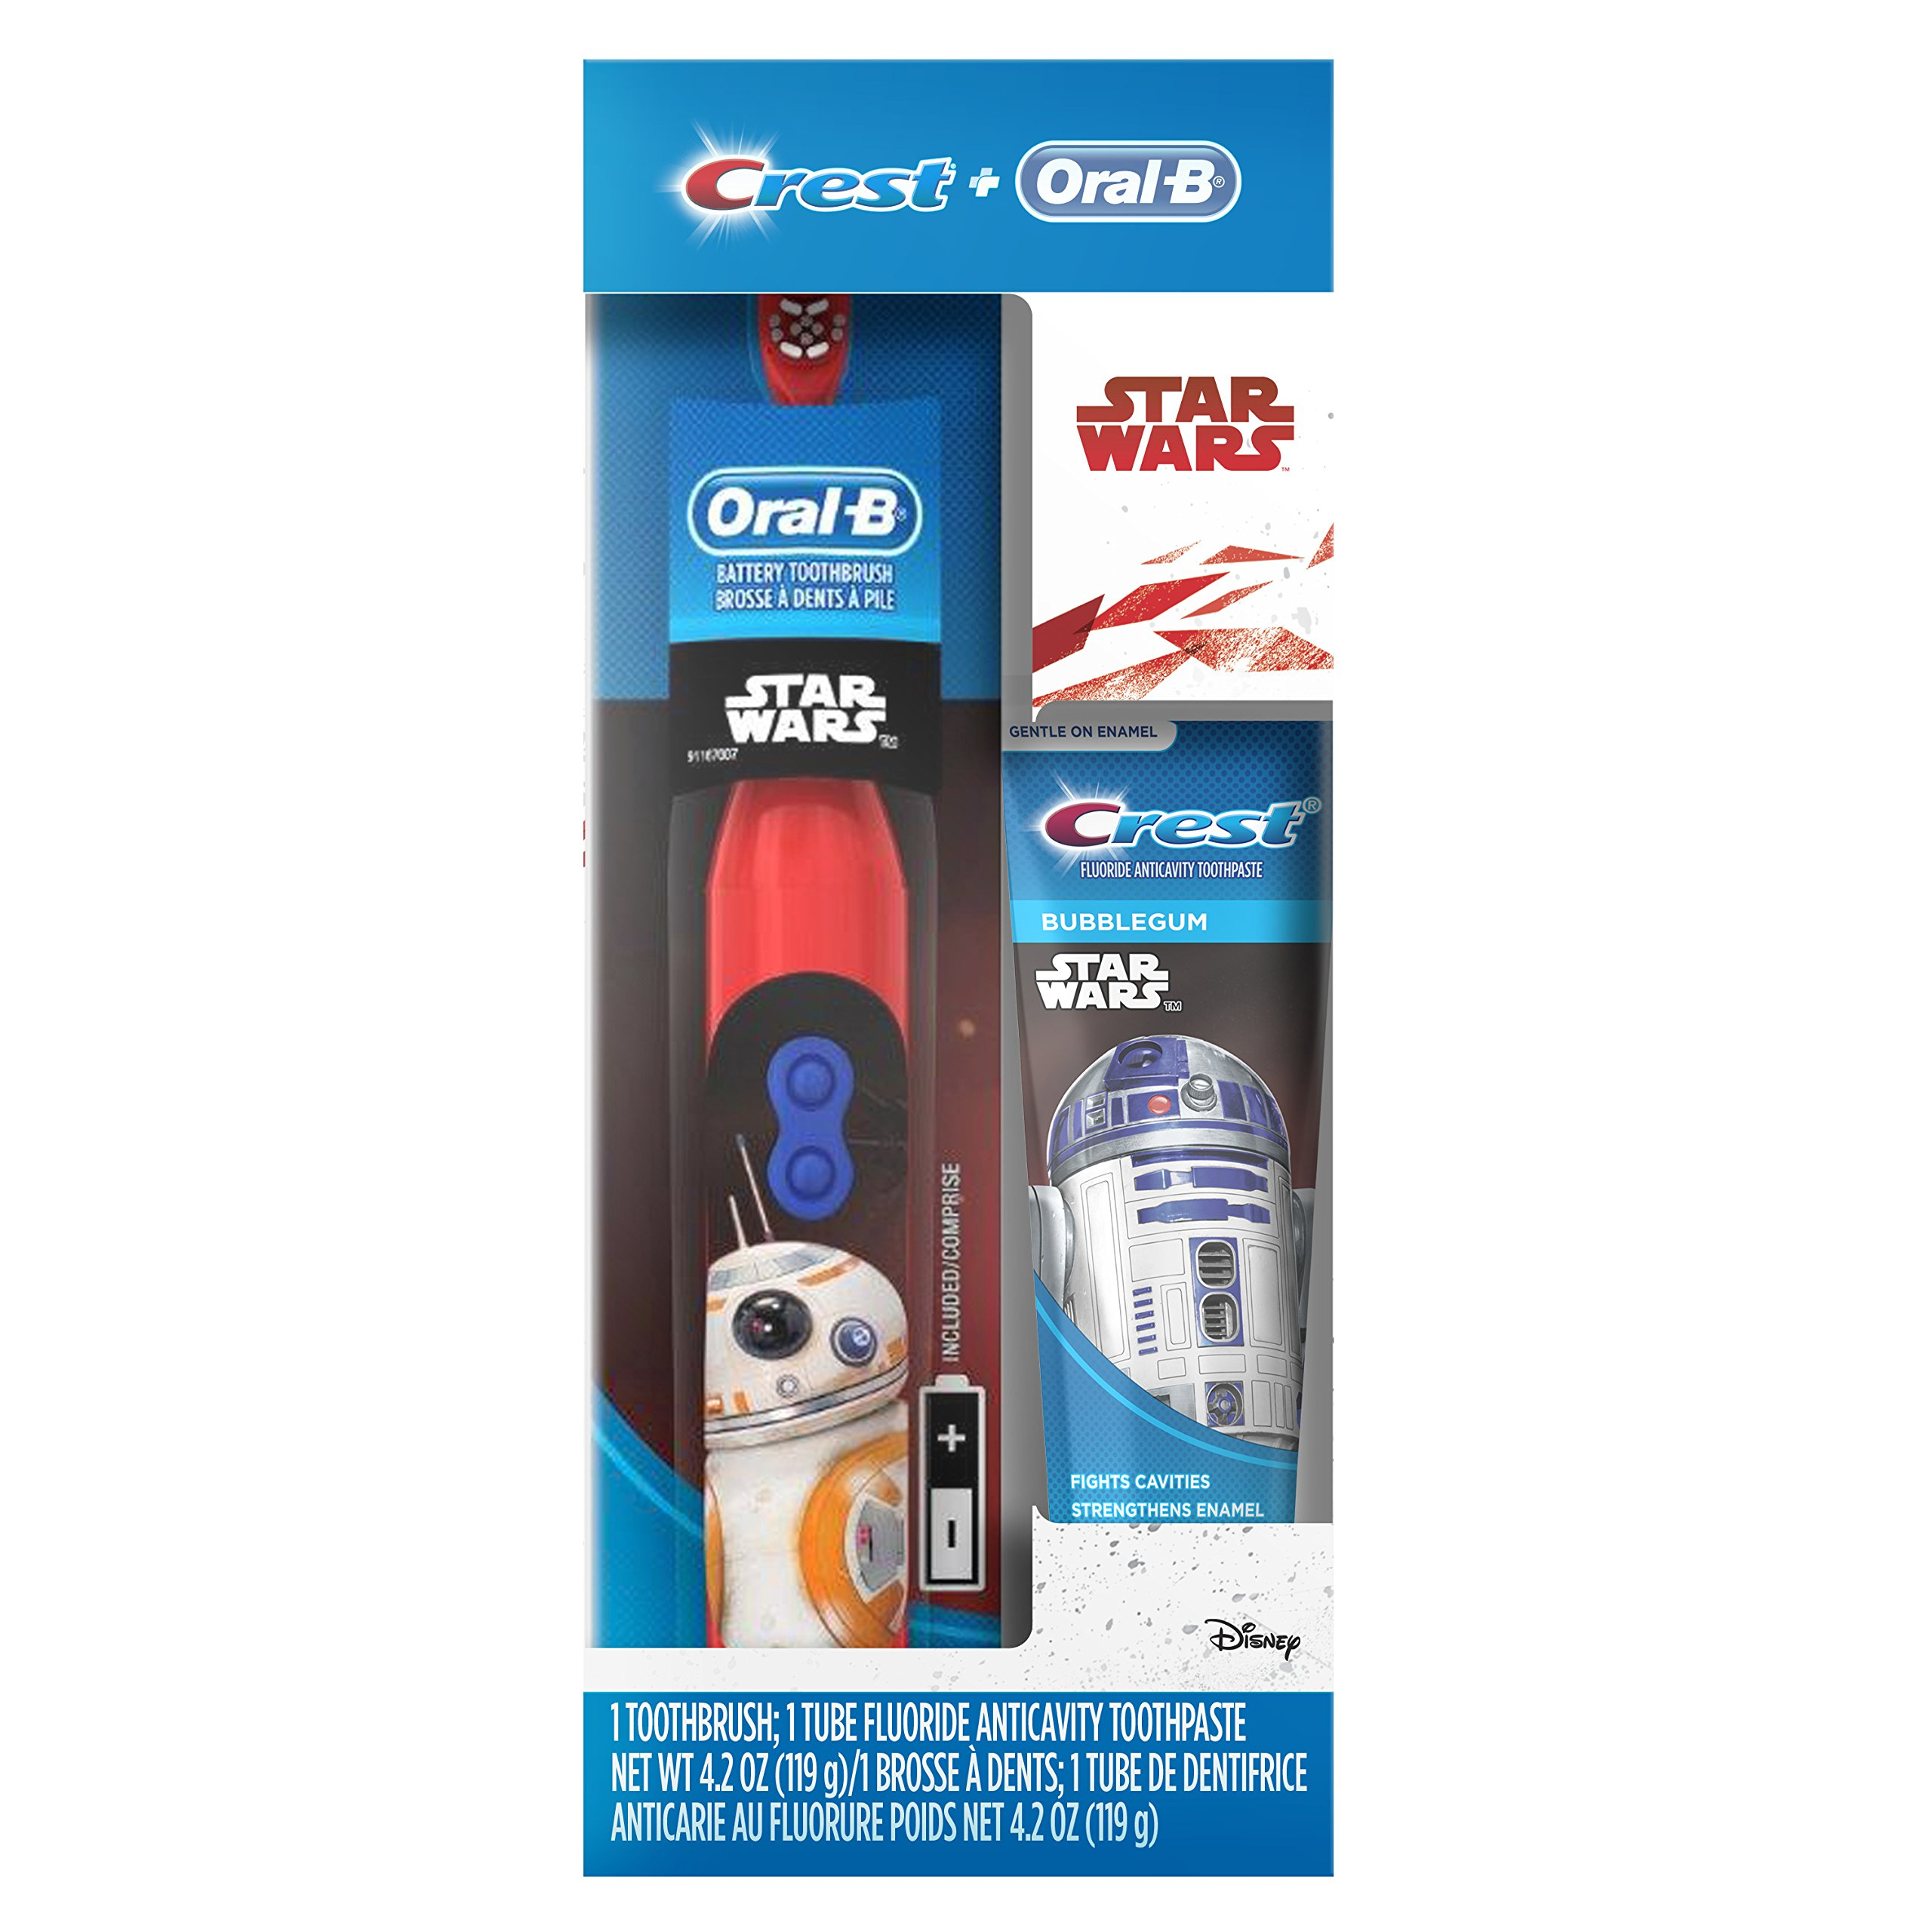 Oral-B and Crest Kid's Pack featuring Disney's STAR WARS, Kids Fluoride Anticavity Toothpaste and Battery Powered Toothbrush